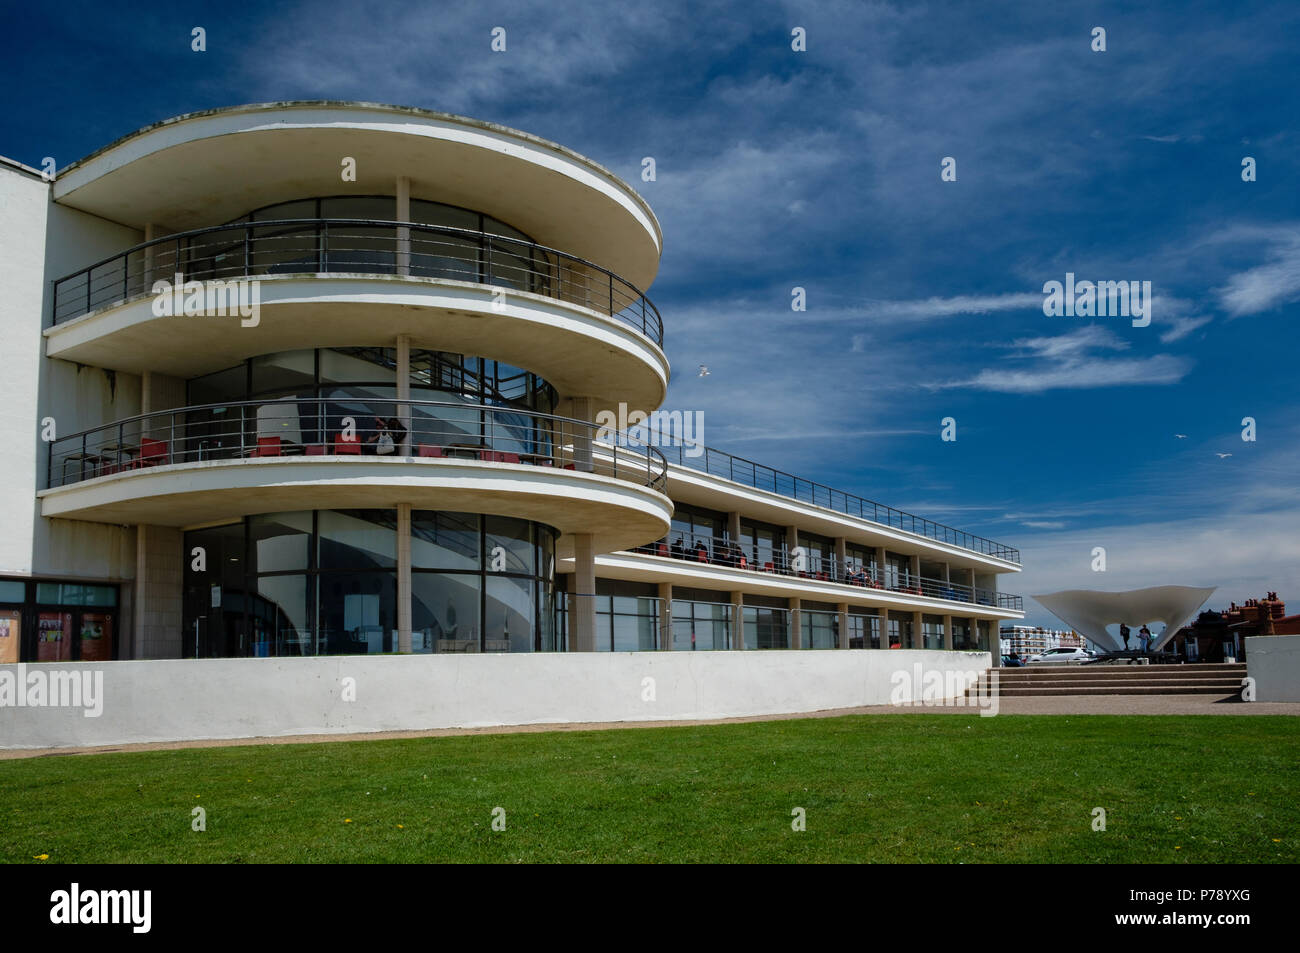 The De La Warr Pavilion at Bexhill-on-Sea, East Sussex was designed in the Modernist style by Erich Mendelsohn and Serge Chermayeff and built in 1935 Stock Photo